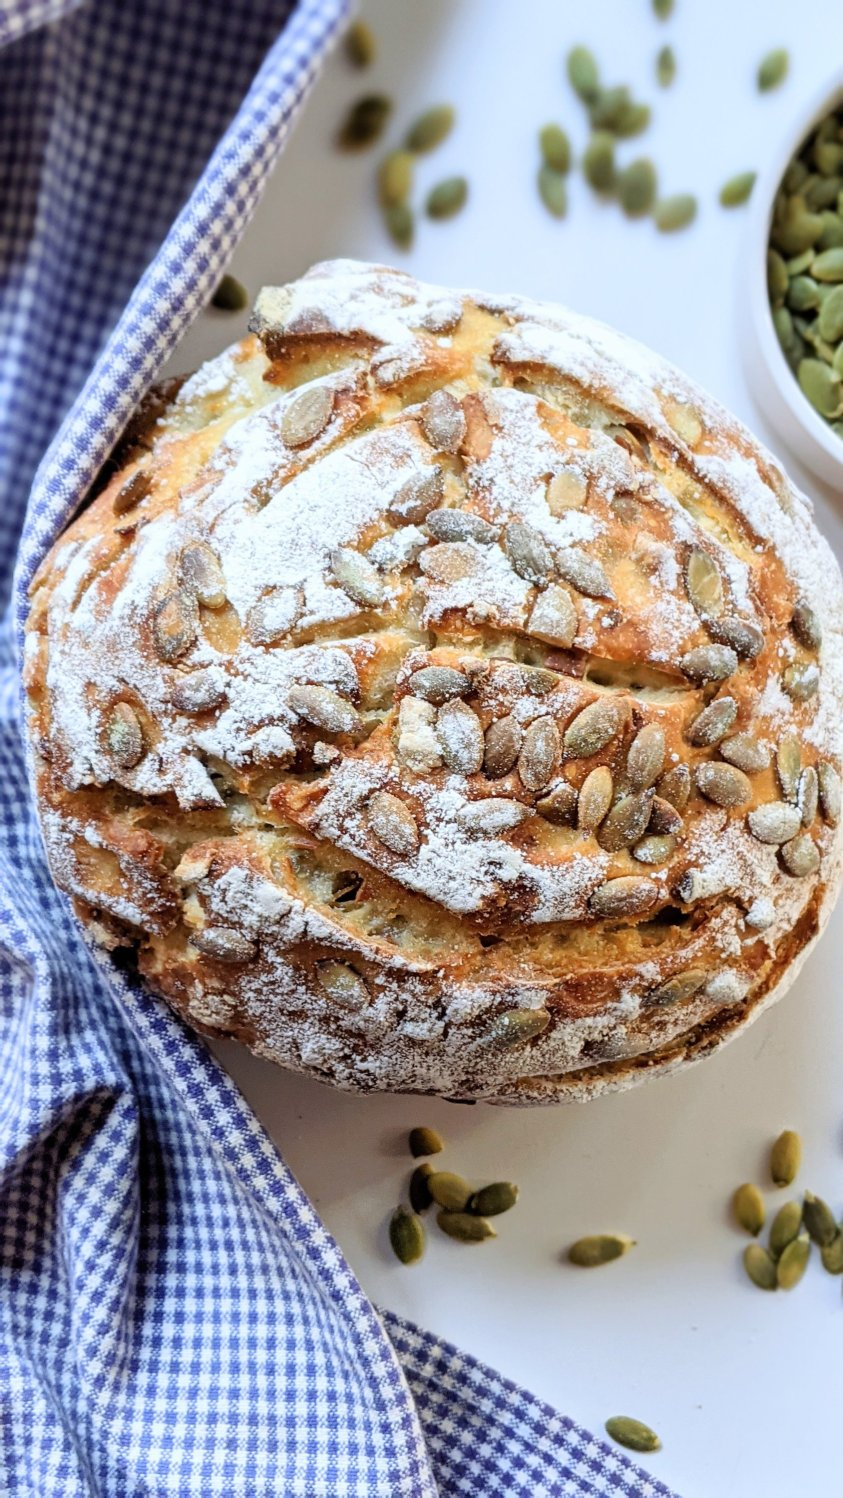 sourdough with pumkin seeds pepitas bread recipe healthy sourdough discard loaf recipe durtch oven no knead bread with seeds baked in